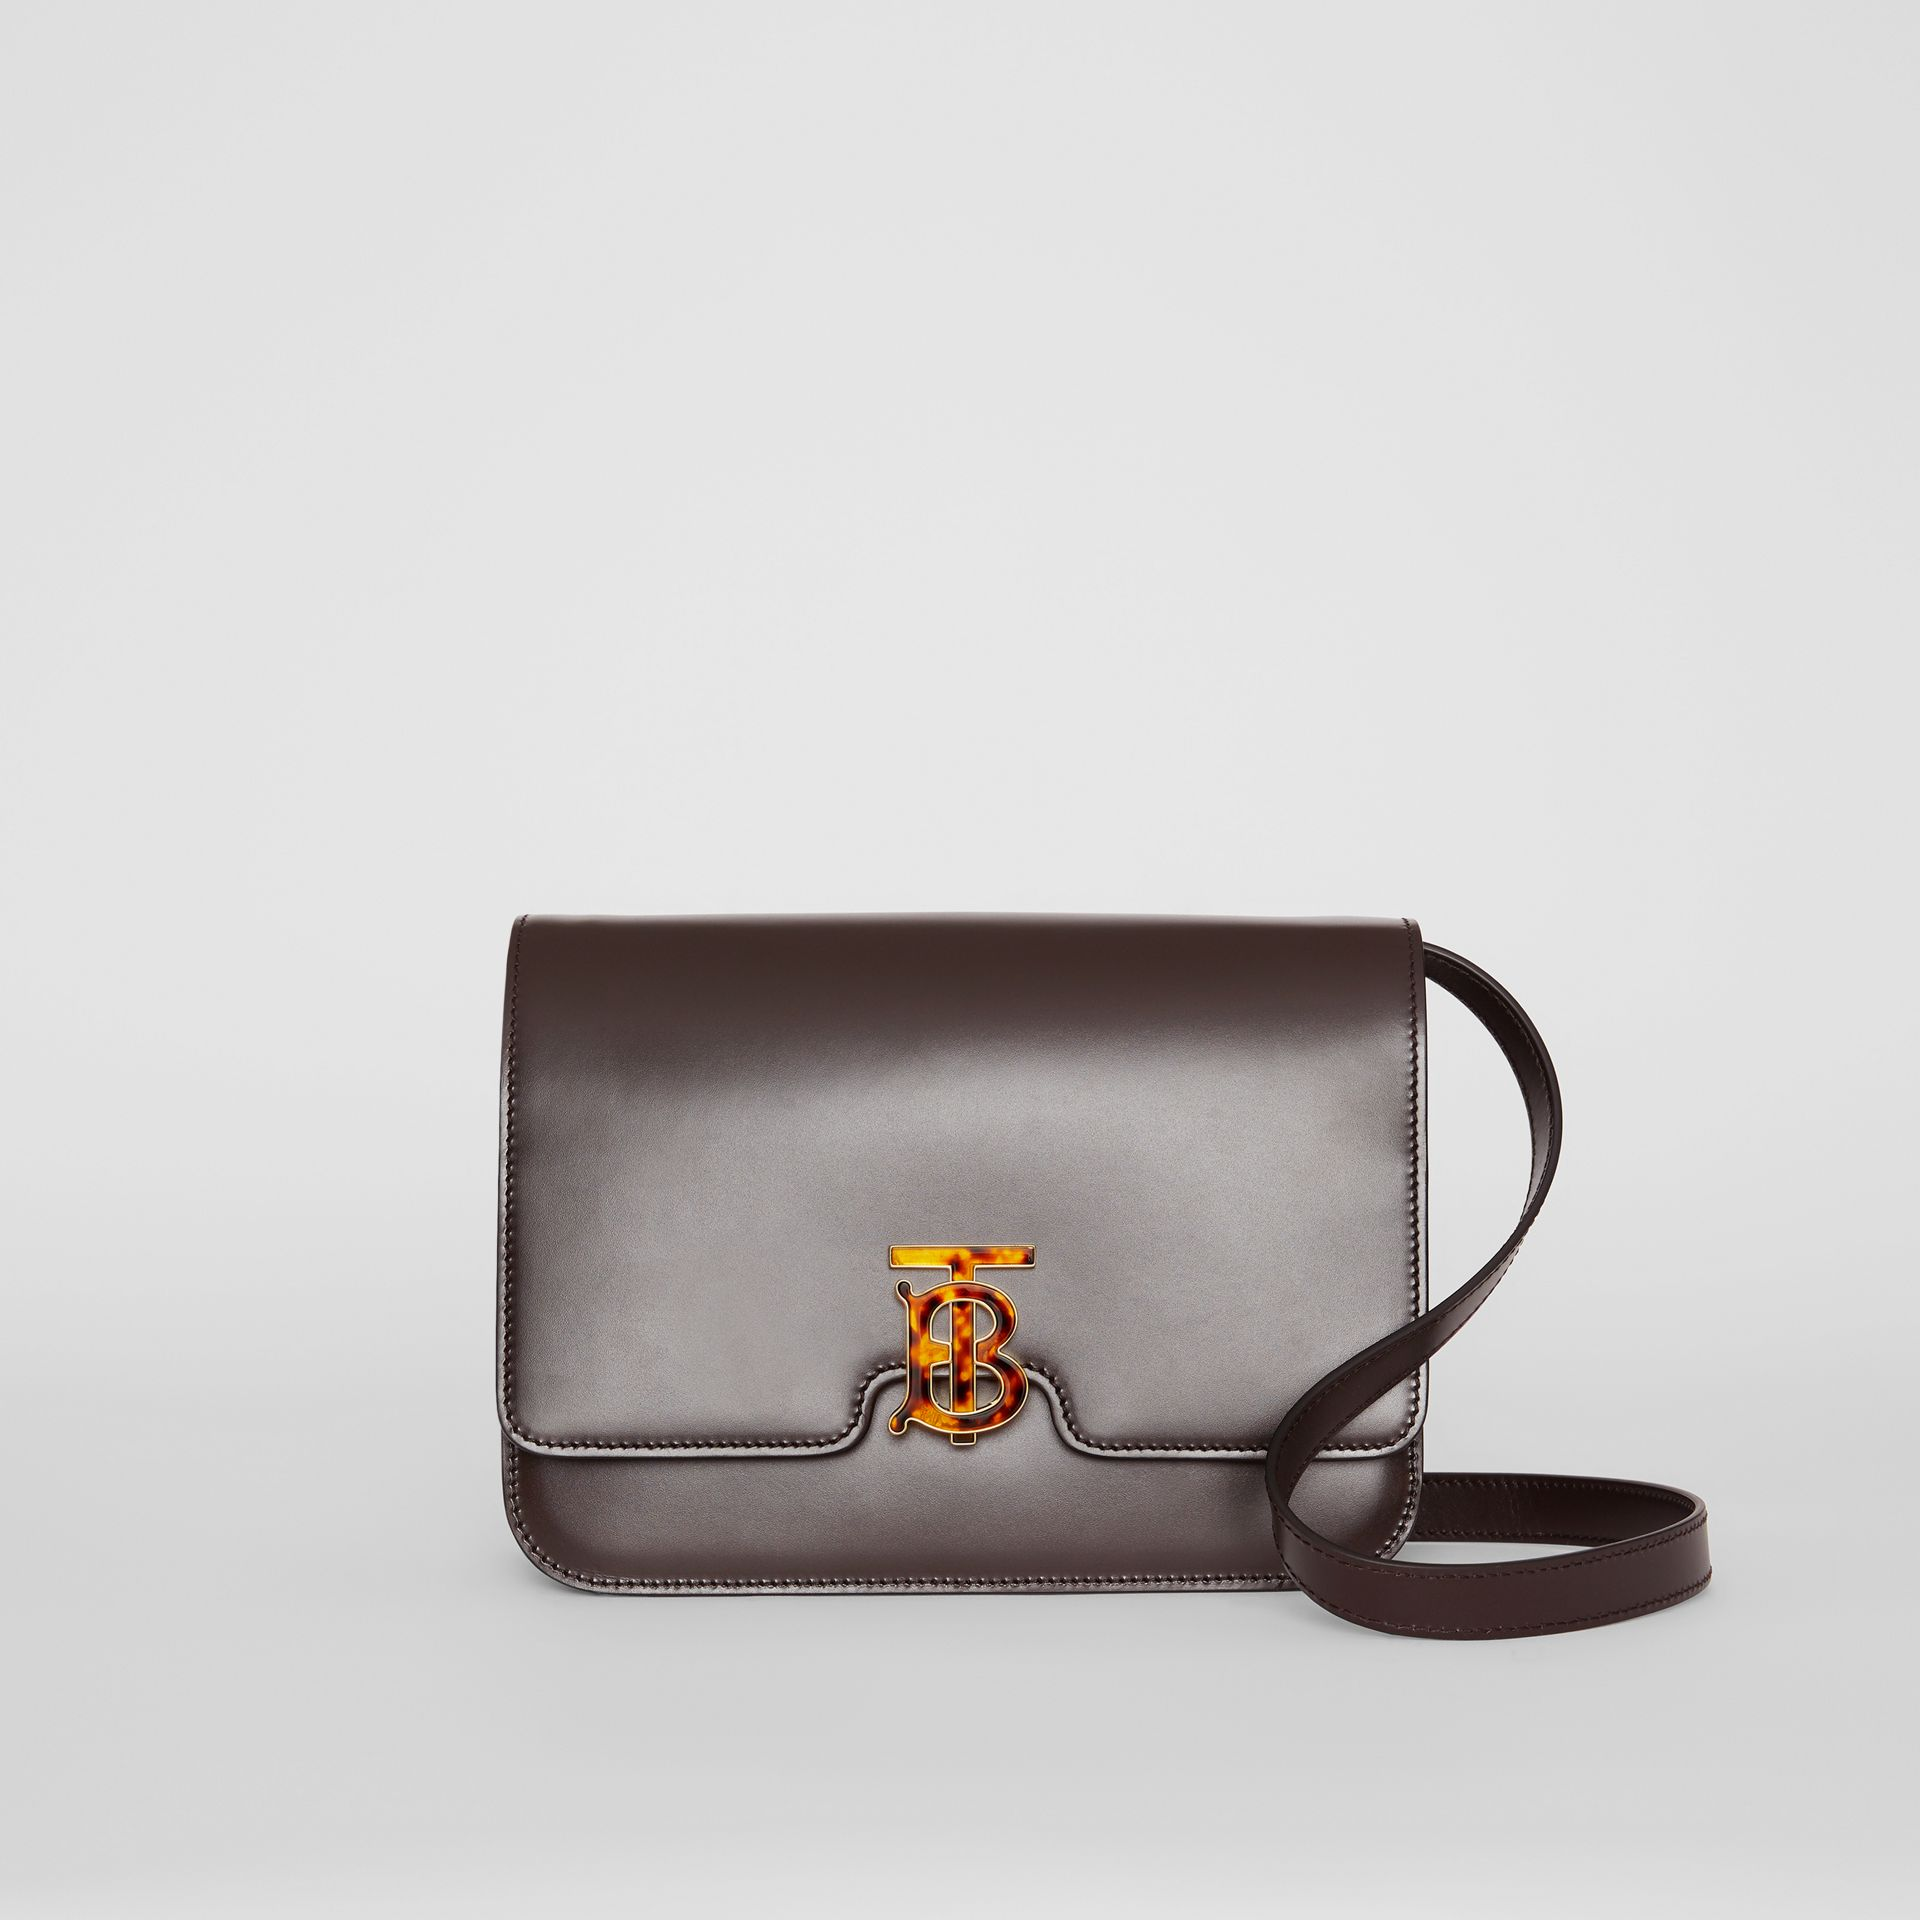 Medium Leather TB Bag in Coffee - Women | Burberry - gallery image 0